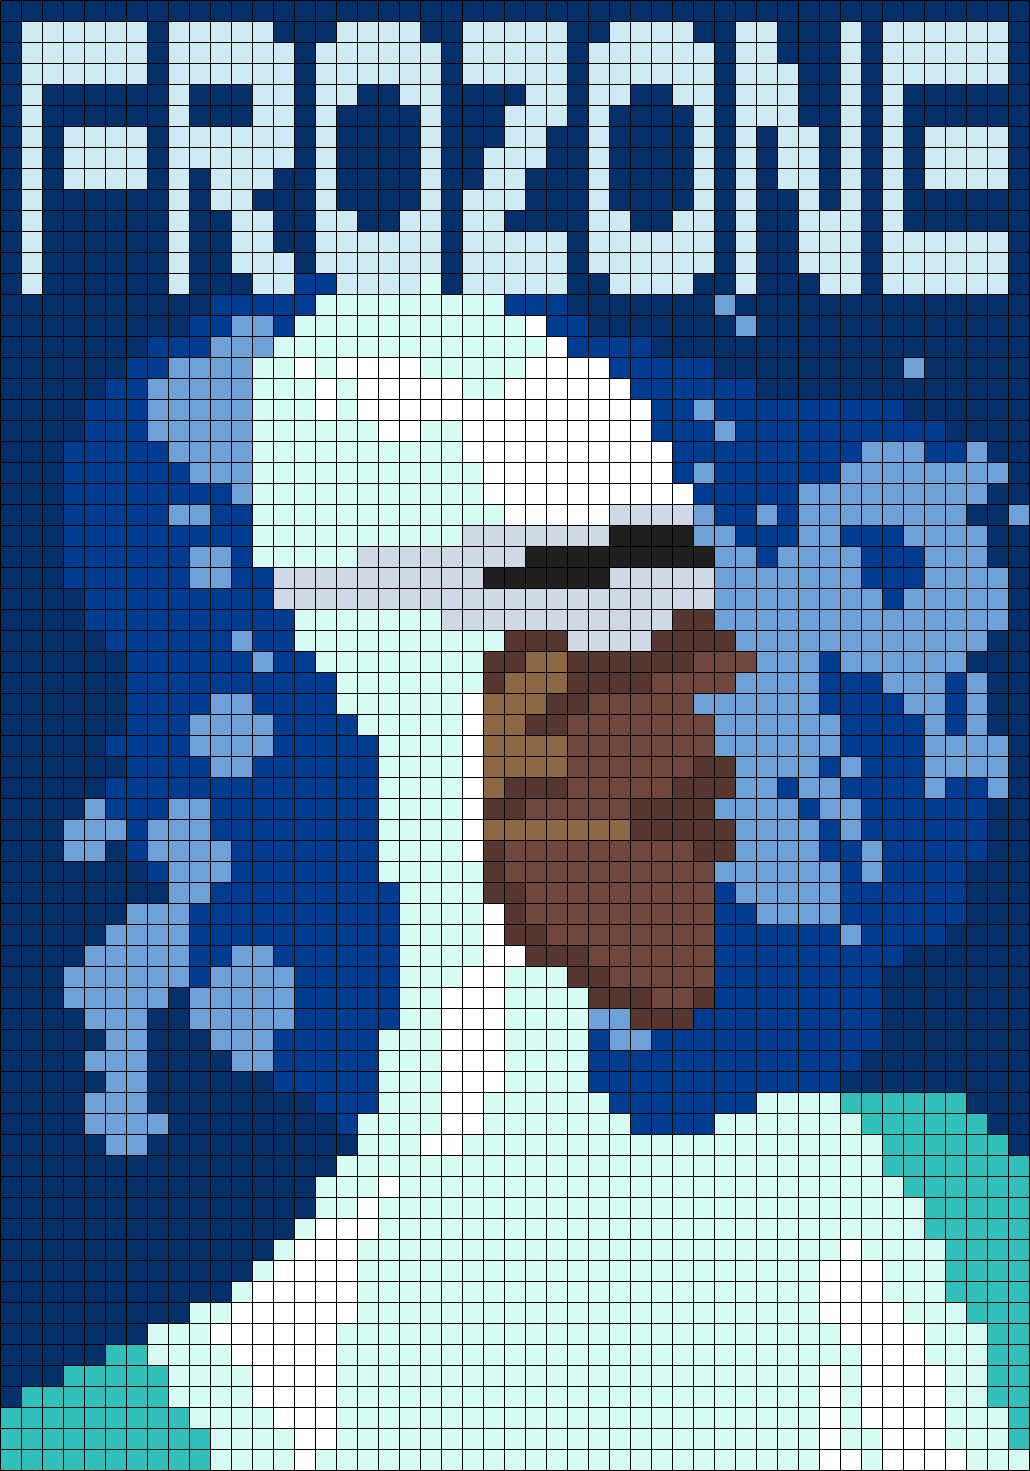 Frozone poster from the incredibles 49 x 70 square grid pattern frozone poster from the incredibles 49 x 70 square grid pattern bankloansurffo Image collections